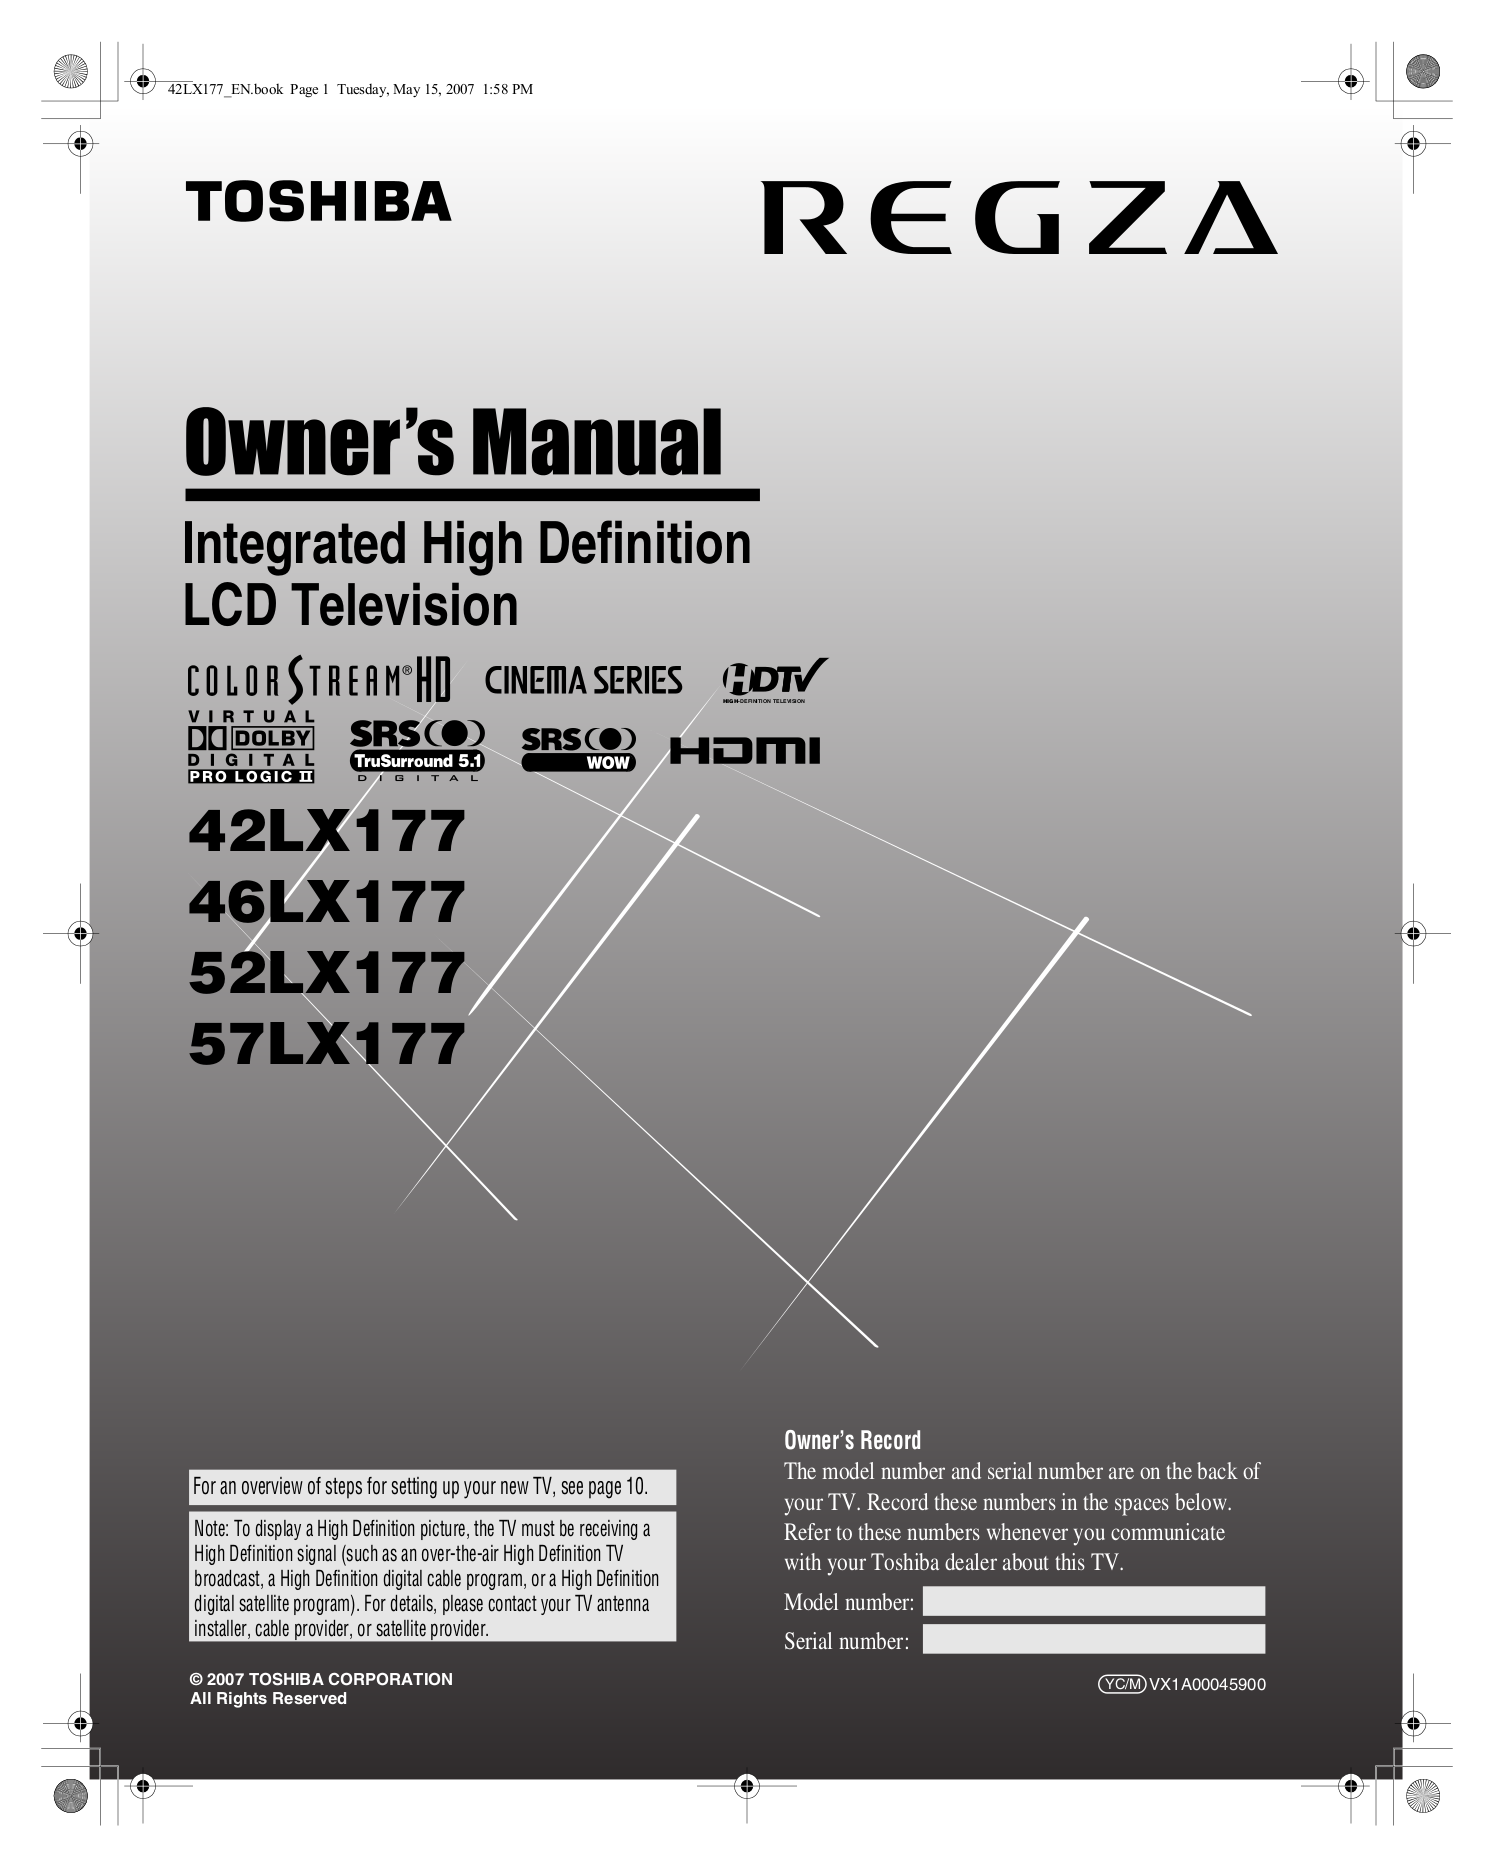 For Toshiba Regza 52lx177 Tv Manual